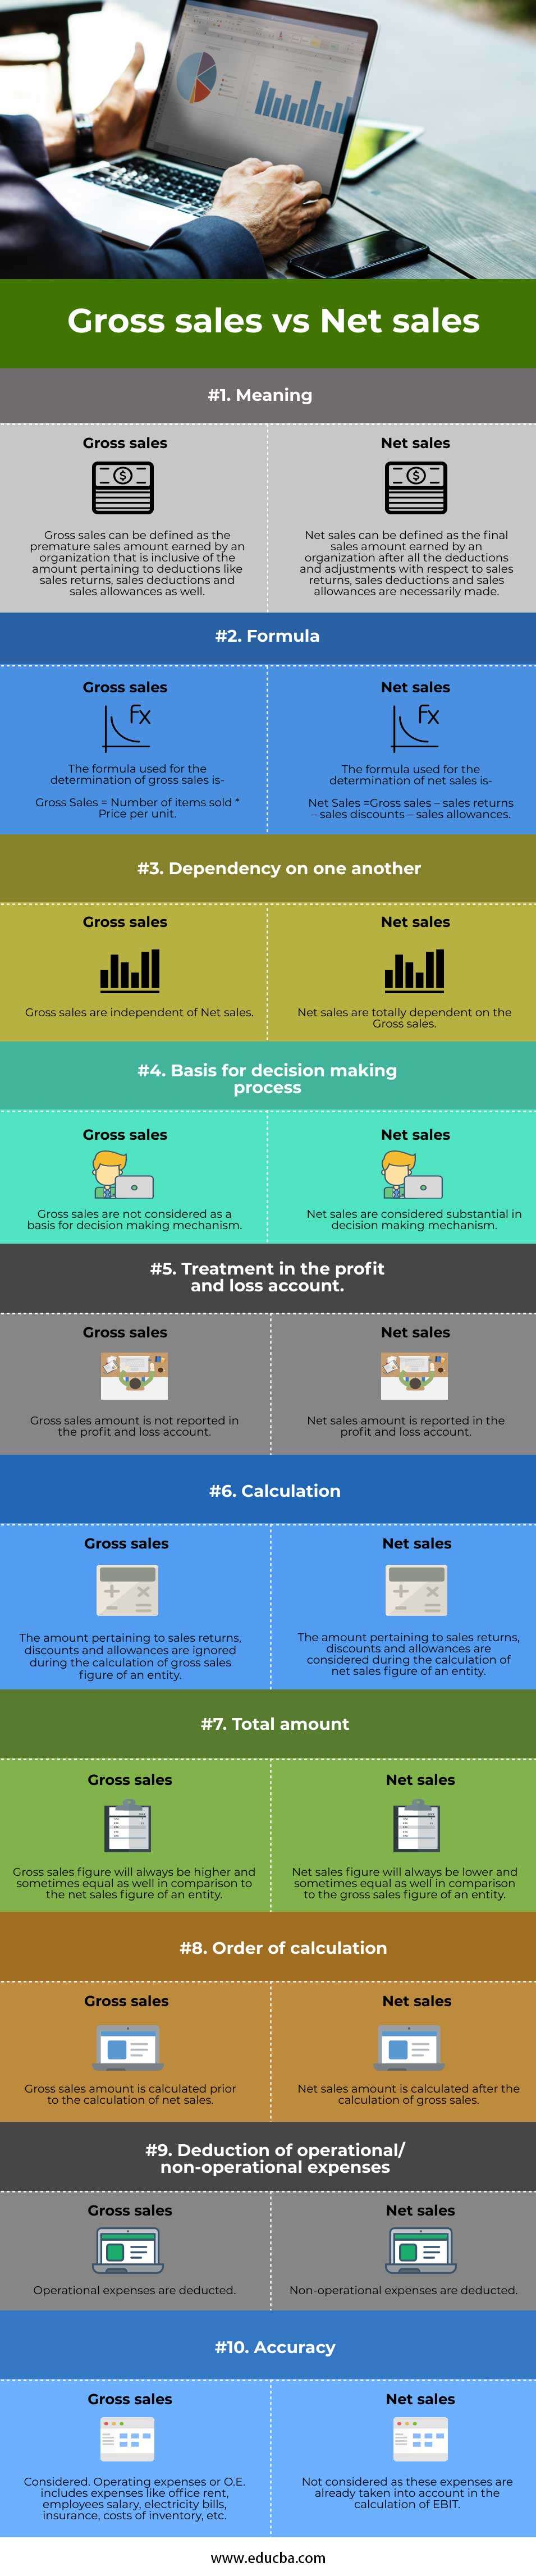 Gross-sales-vs-Net-sales-info